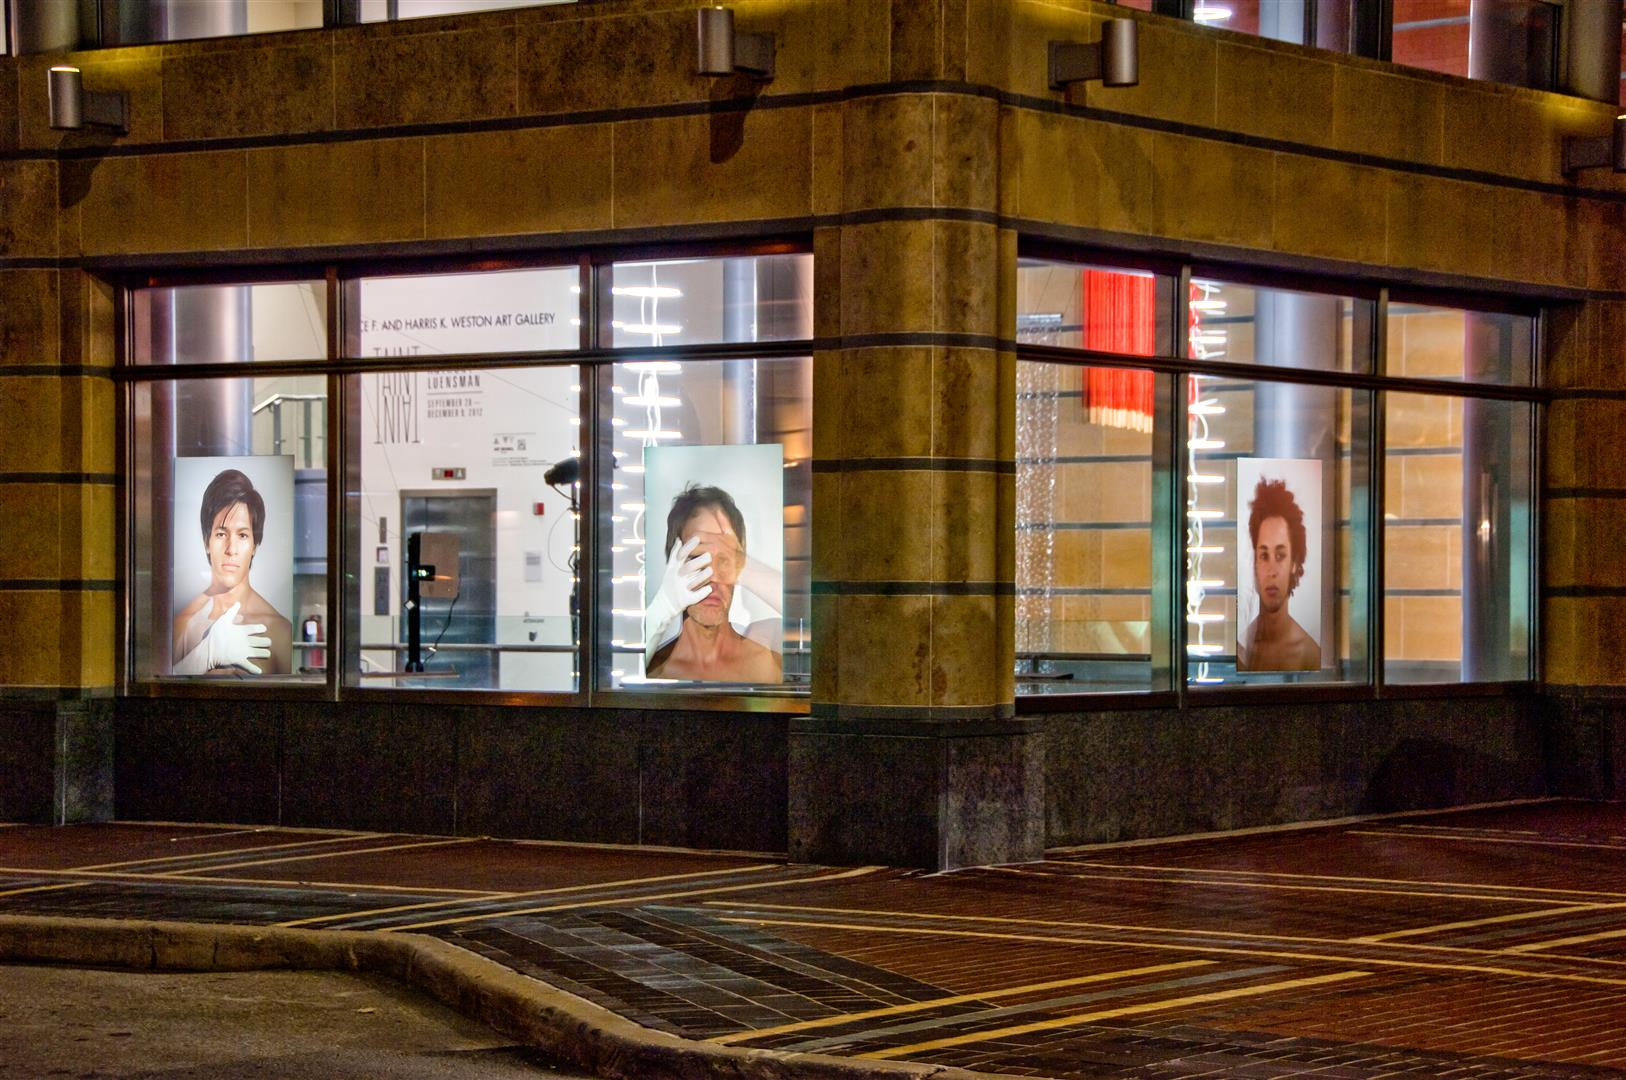 "ASFALLSBUKKAKESOFALLSBUKKAKEFALLS   rotation of any three: Gad, APL & Alex, JoJo, Simmi, and Julian - each edition of 3  video projections on windows; interior & exterior  3 video projectors, approx. 00:30:00 loop each  48"" x 36"" image / 2012"